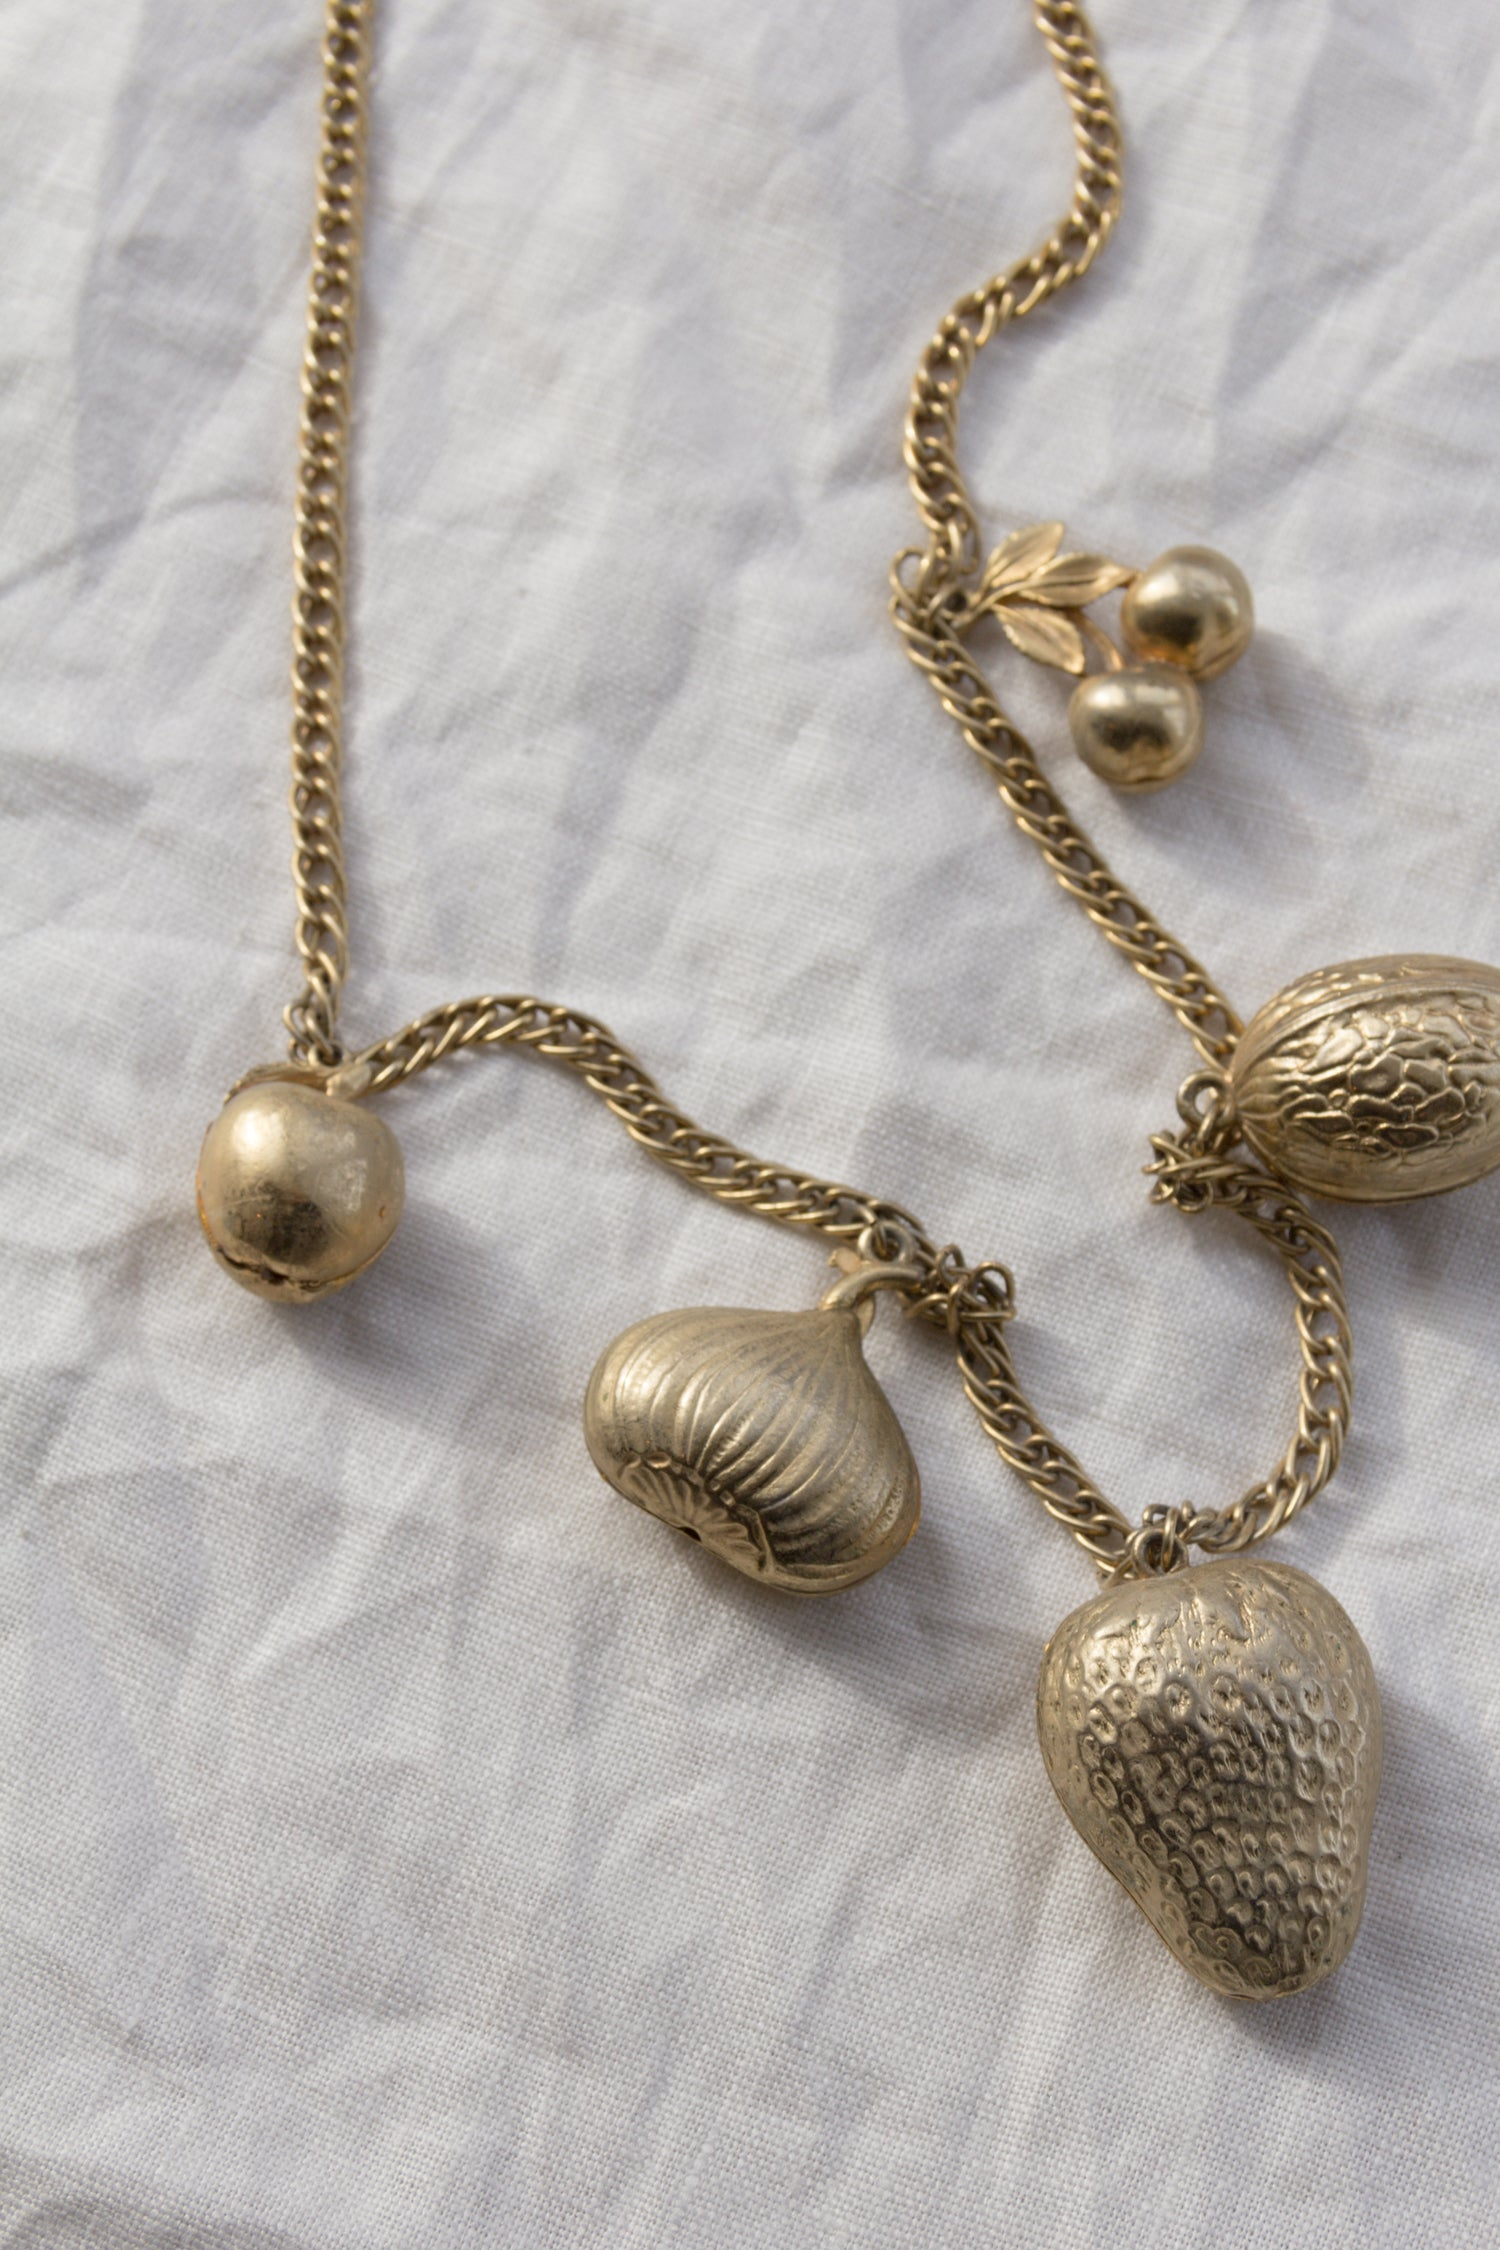 Gold Fruit Charm Necklace